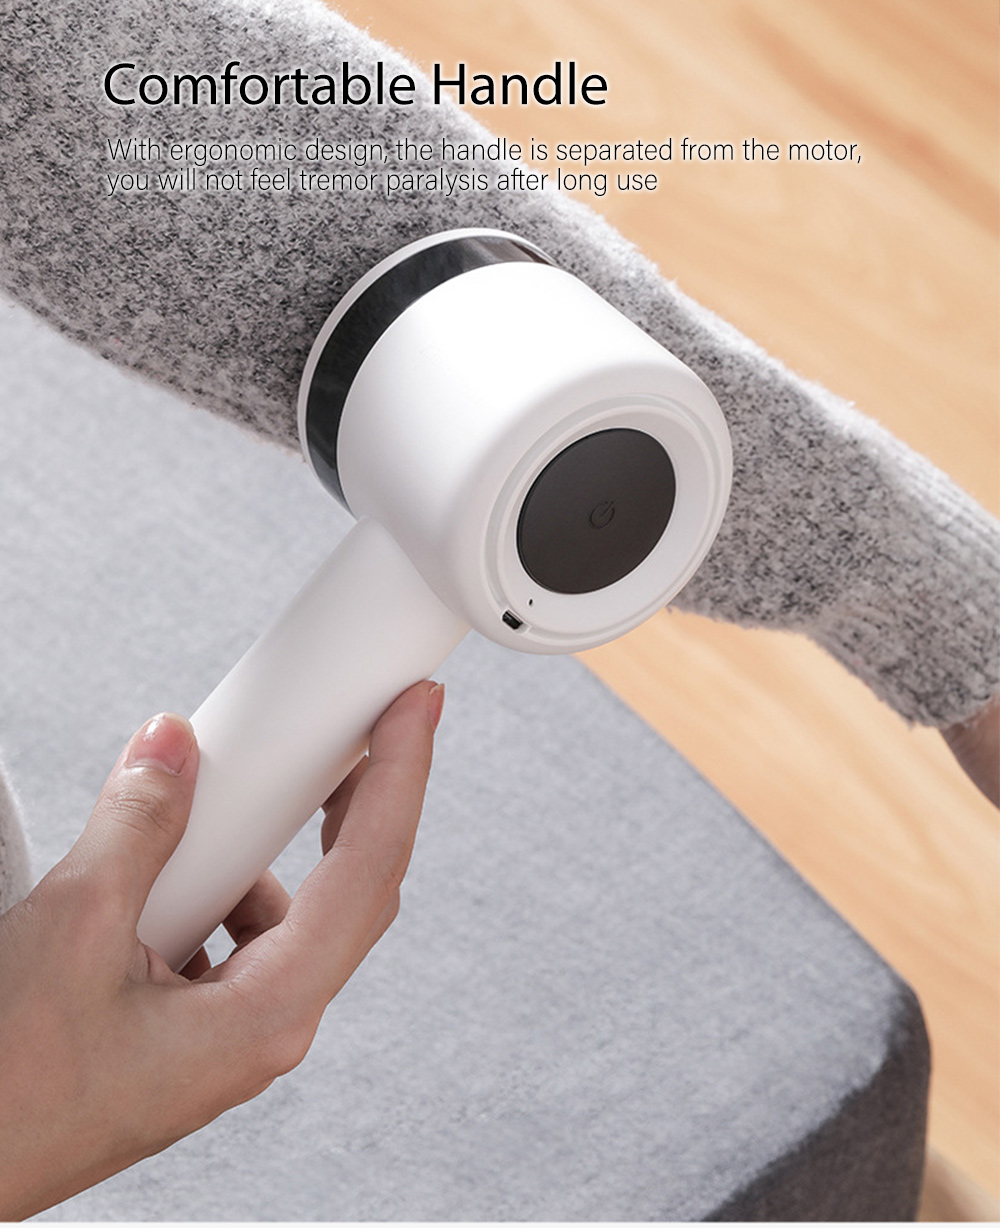 Deerma Electric Lint Remover Portable Hair Ball Trimmer- White